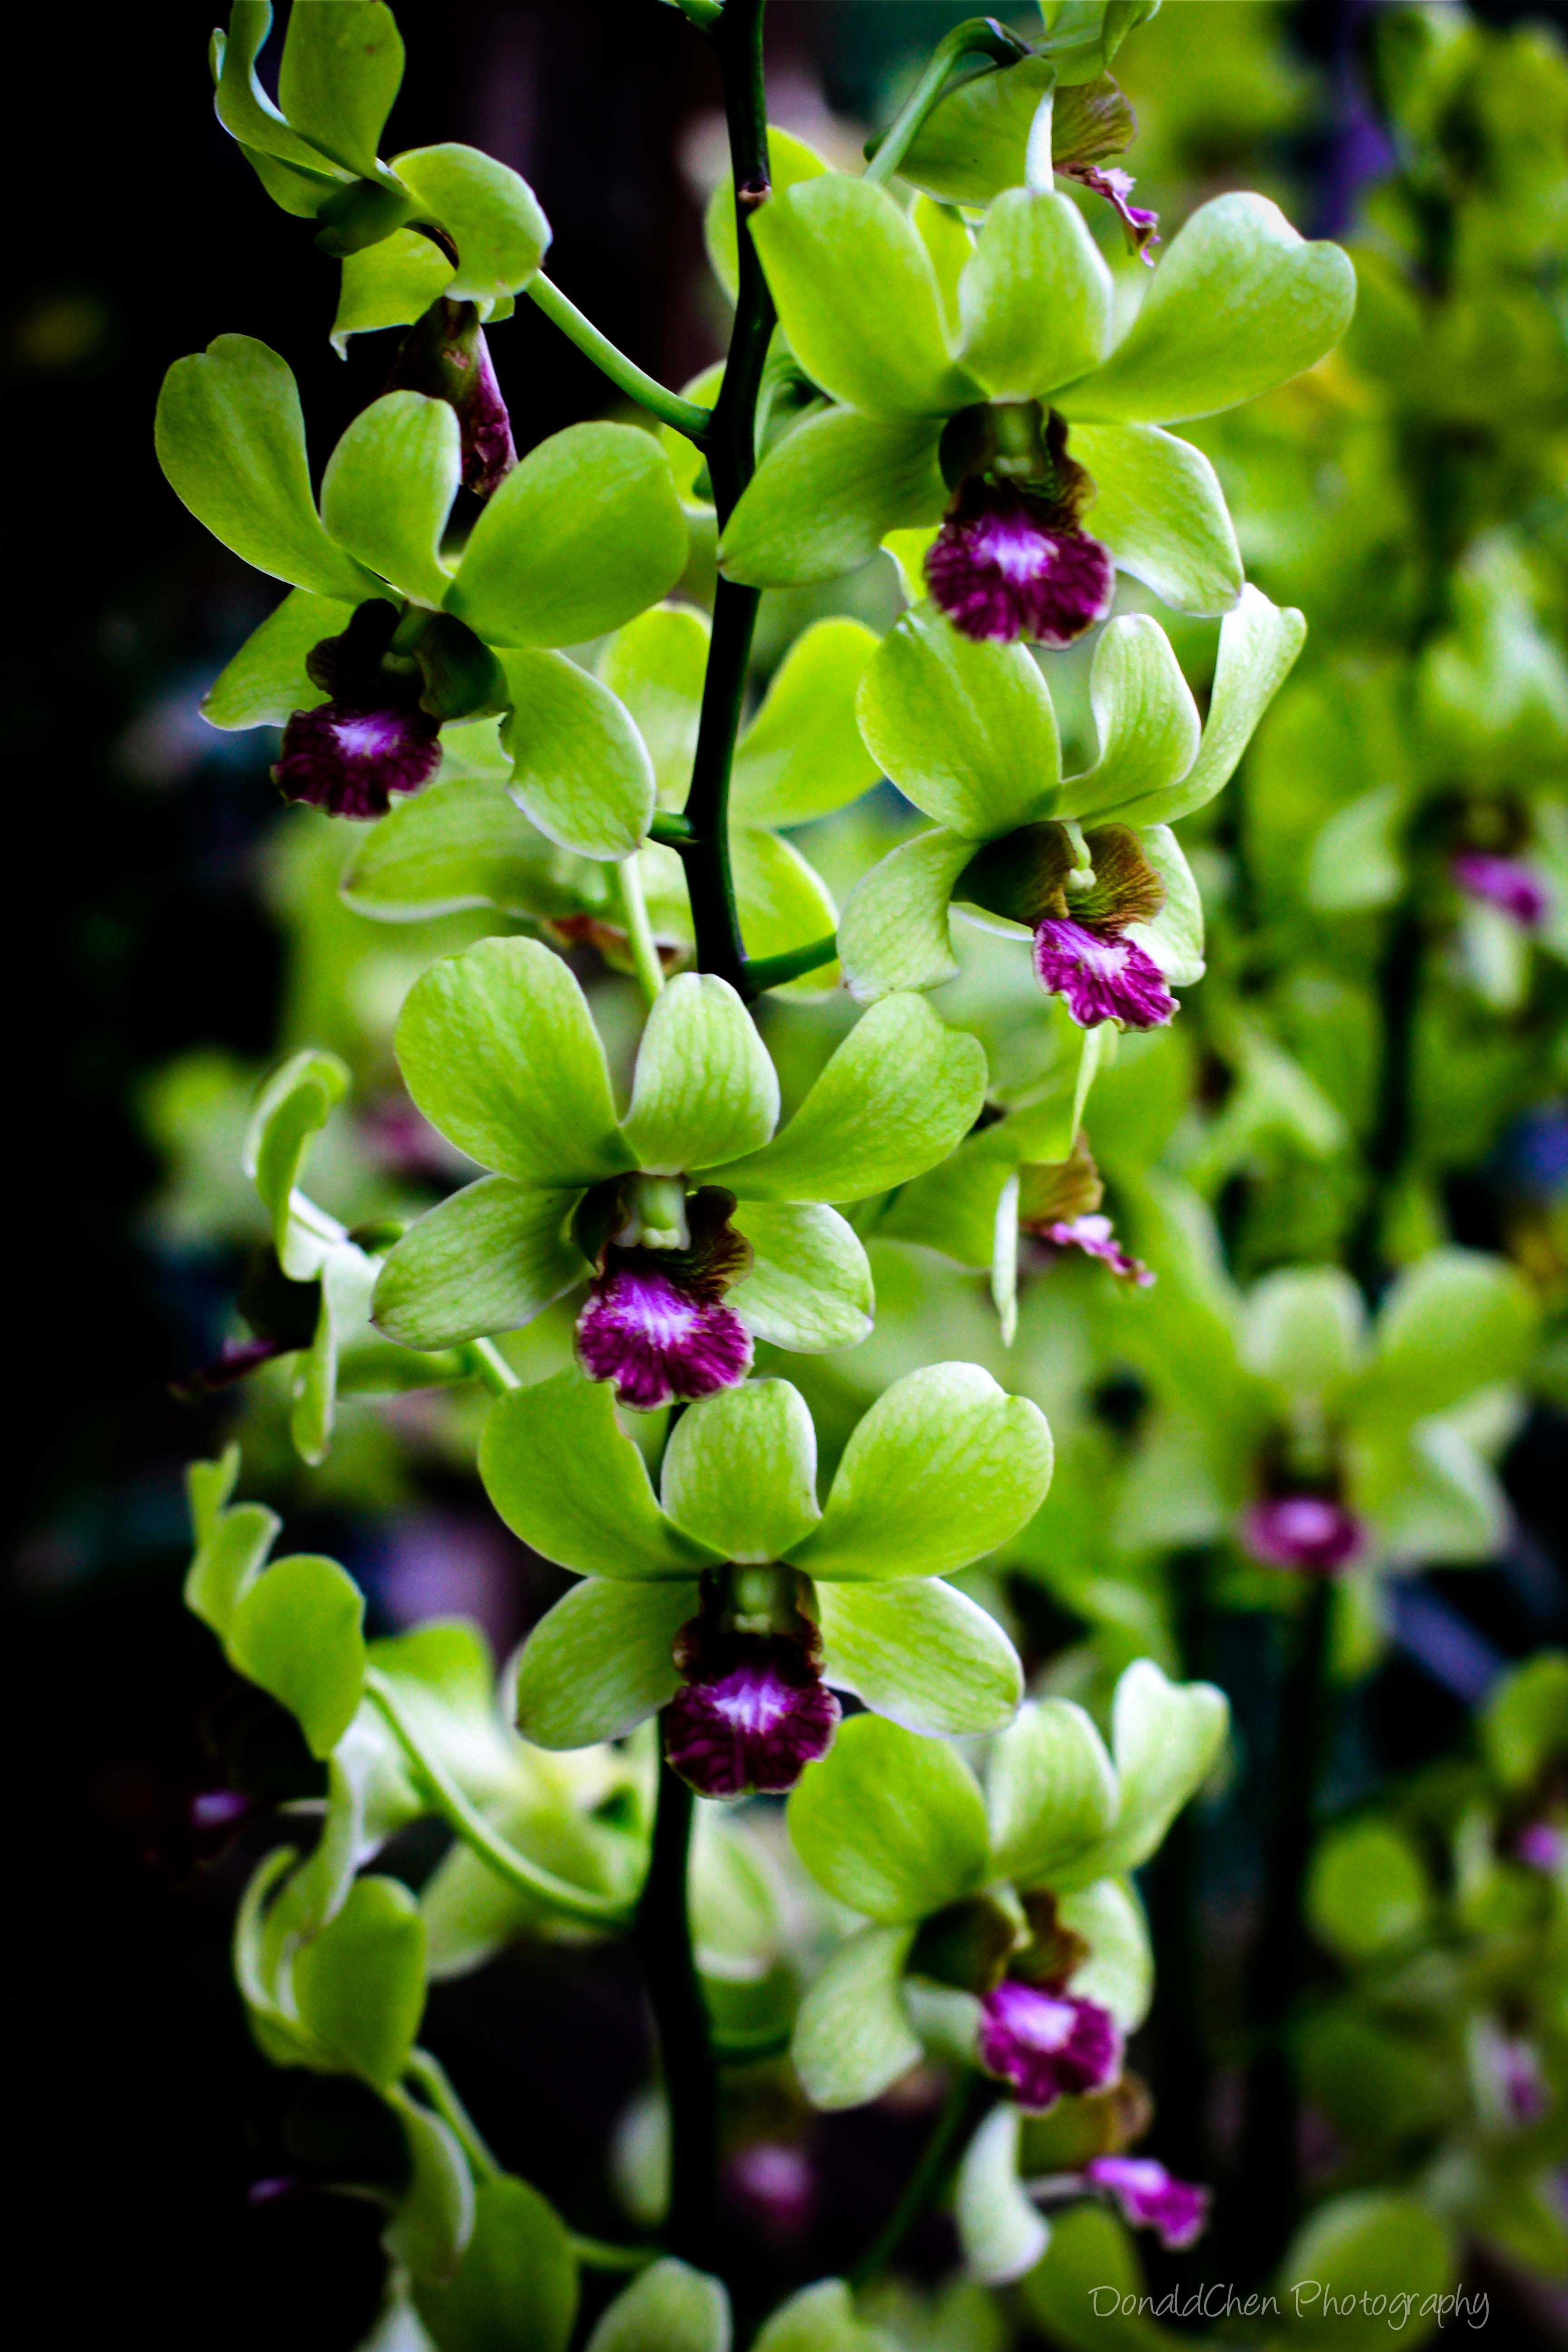 Dendrobium Orchid Singapore Flower By Donald Chen Orchid Flower Beautiful Orchids Unusual Flowers